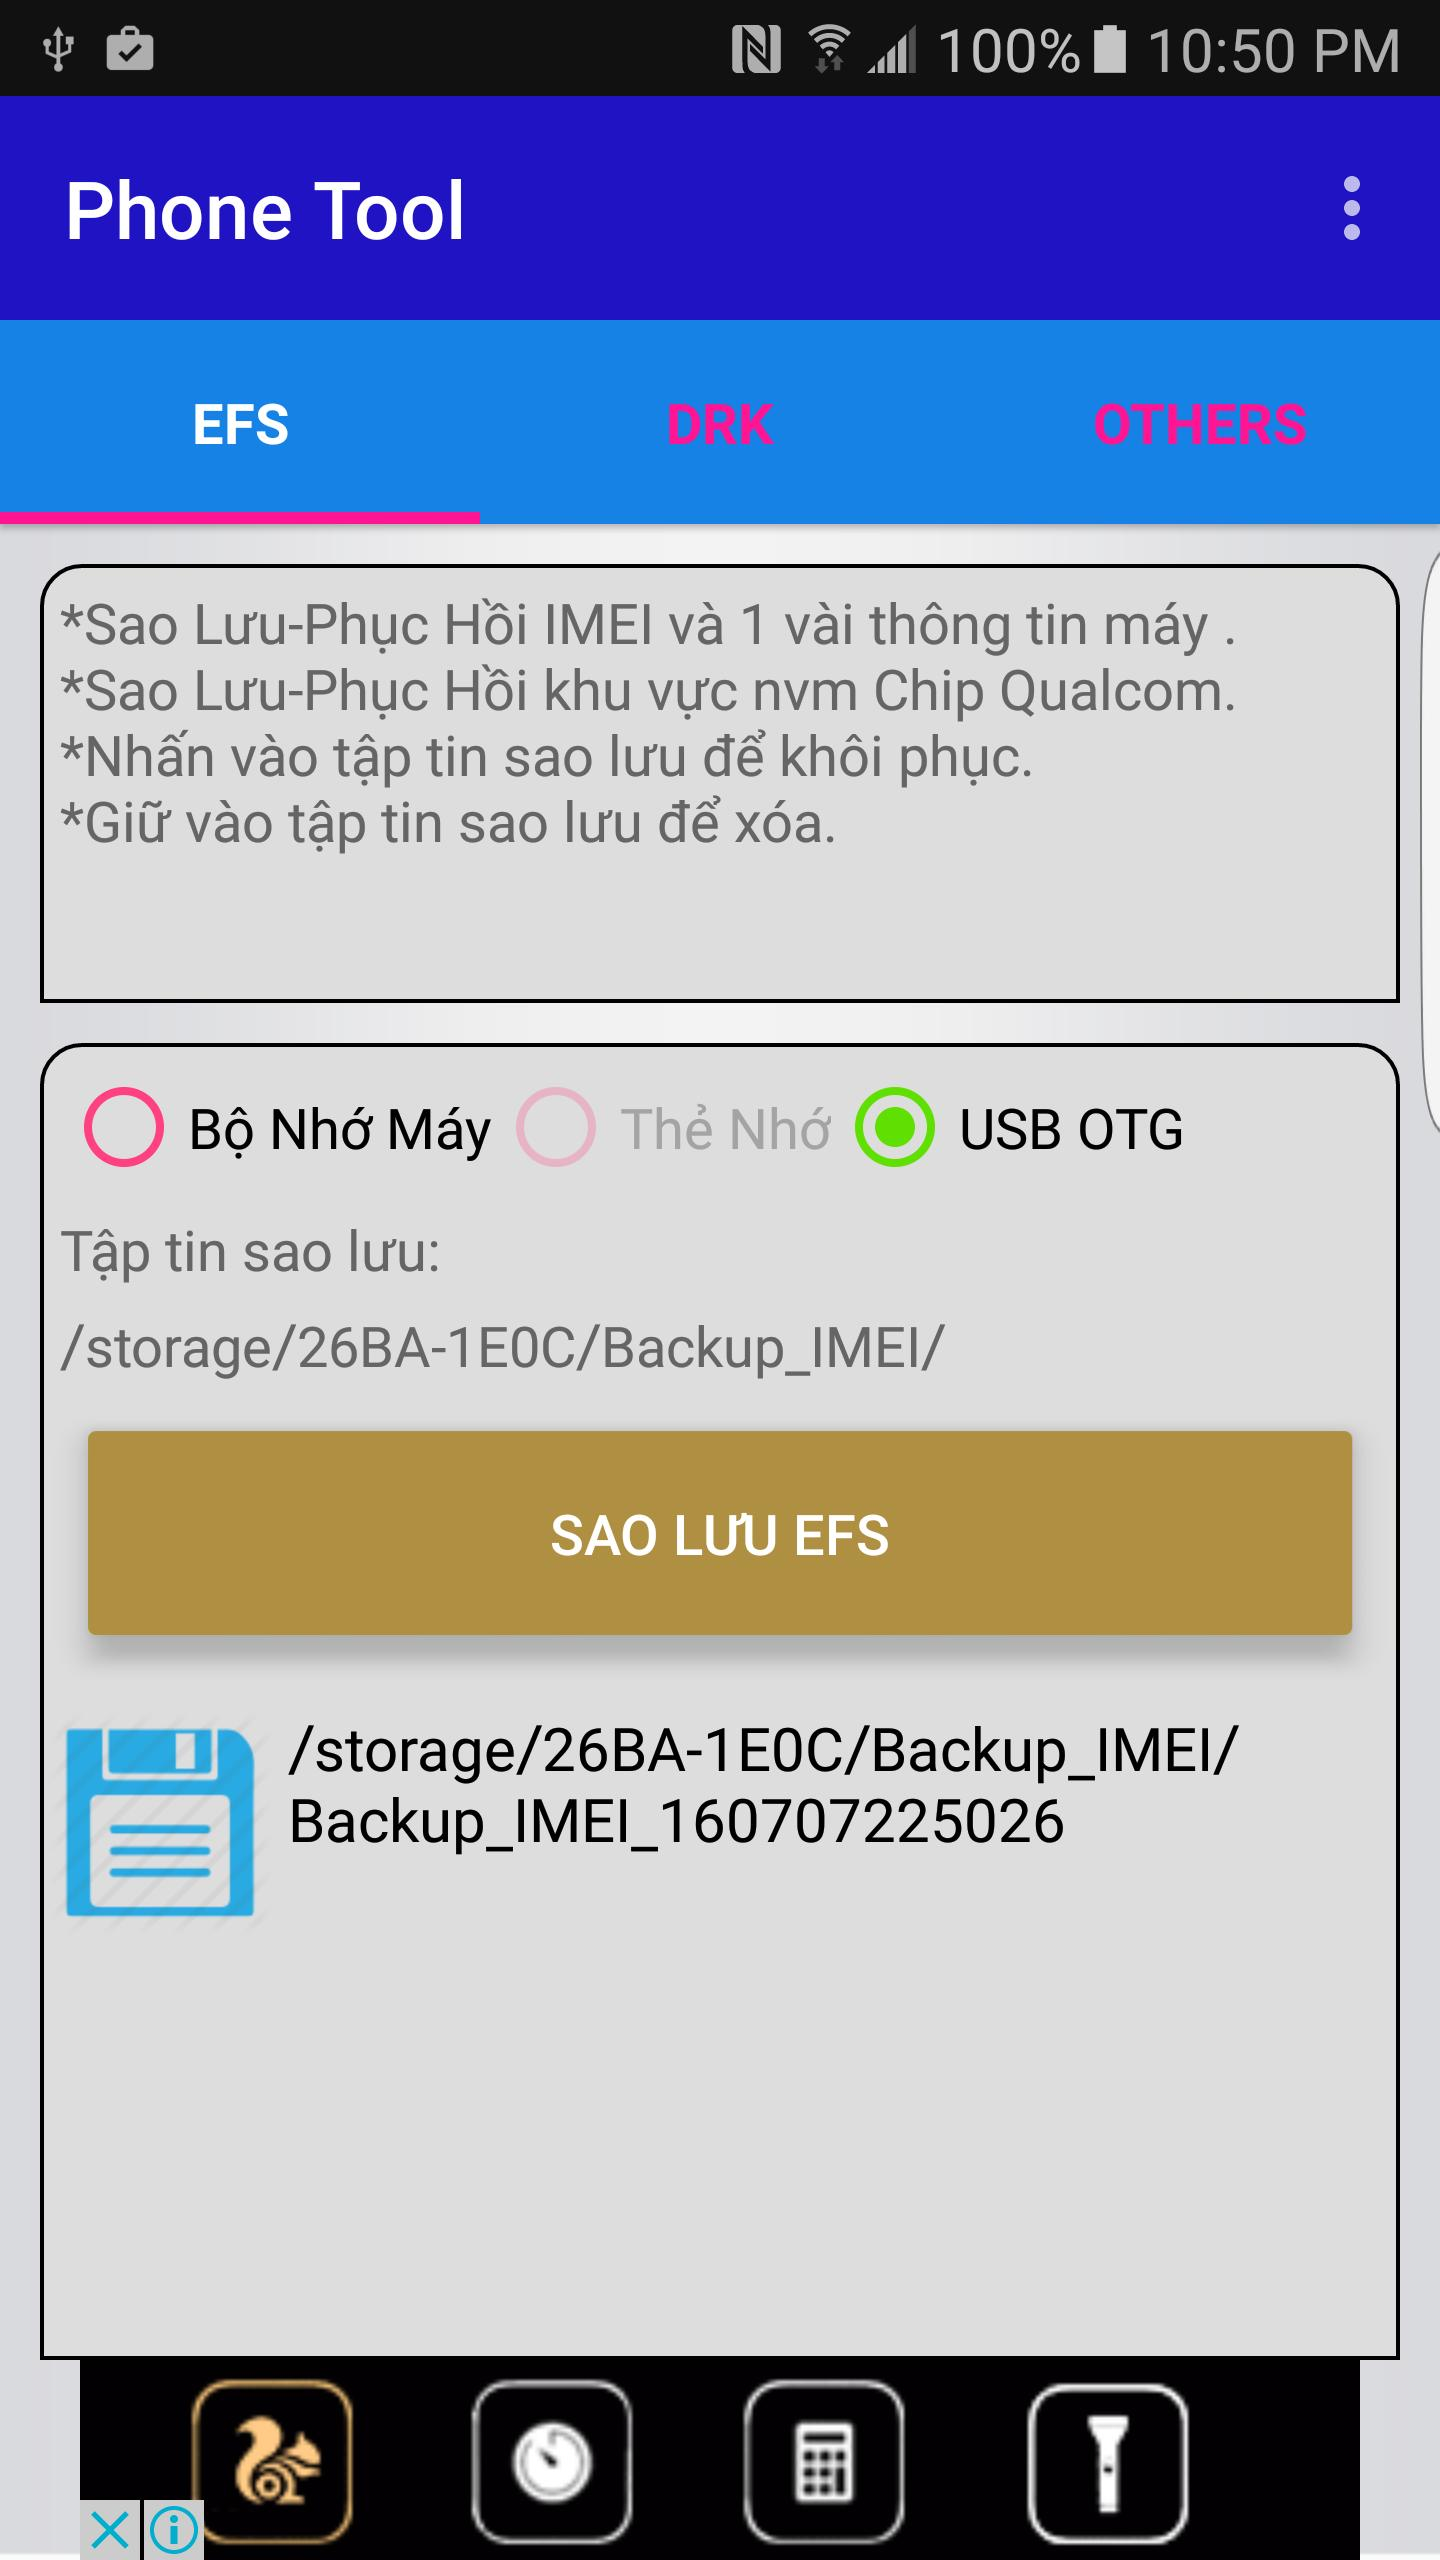 Phone Tool☆EFS☆IMEI☆DRK☆LOCALE for Android - APK Download